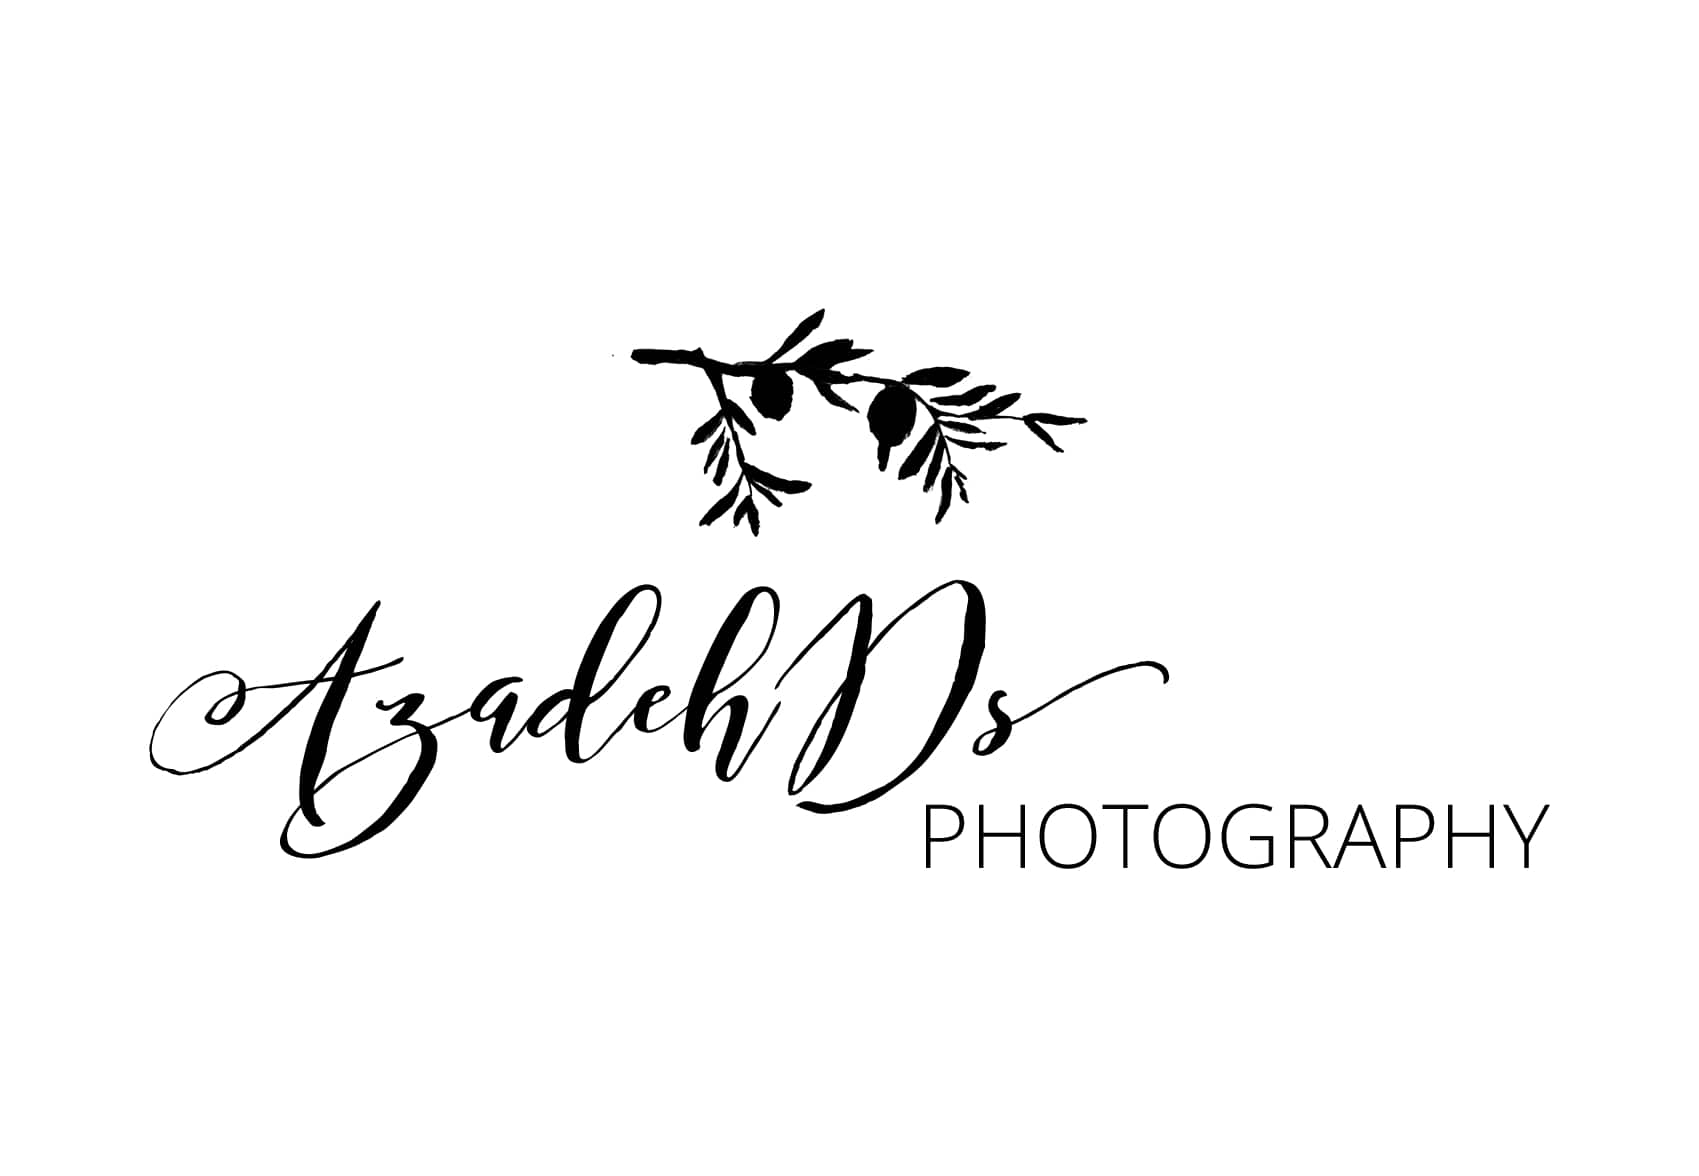 AZADEHDS photography's Signature